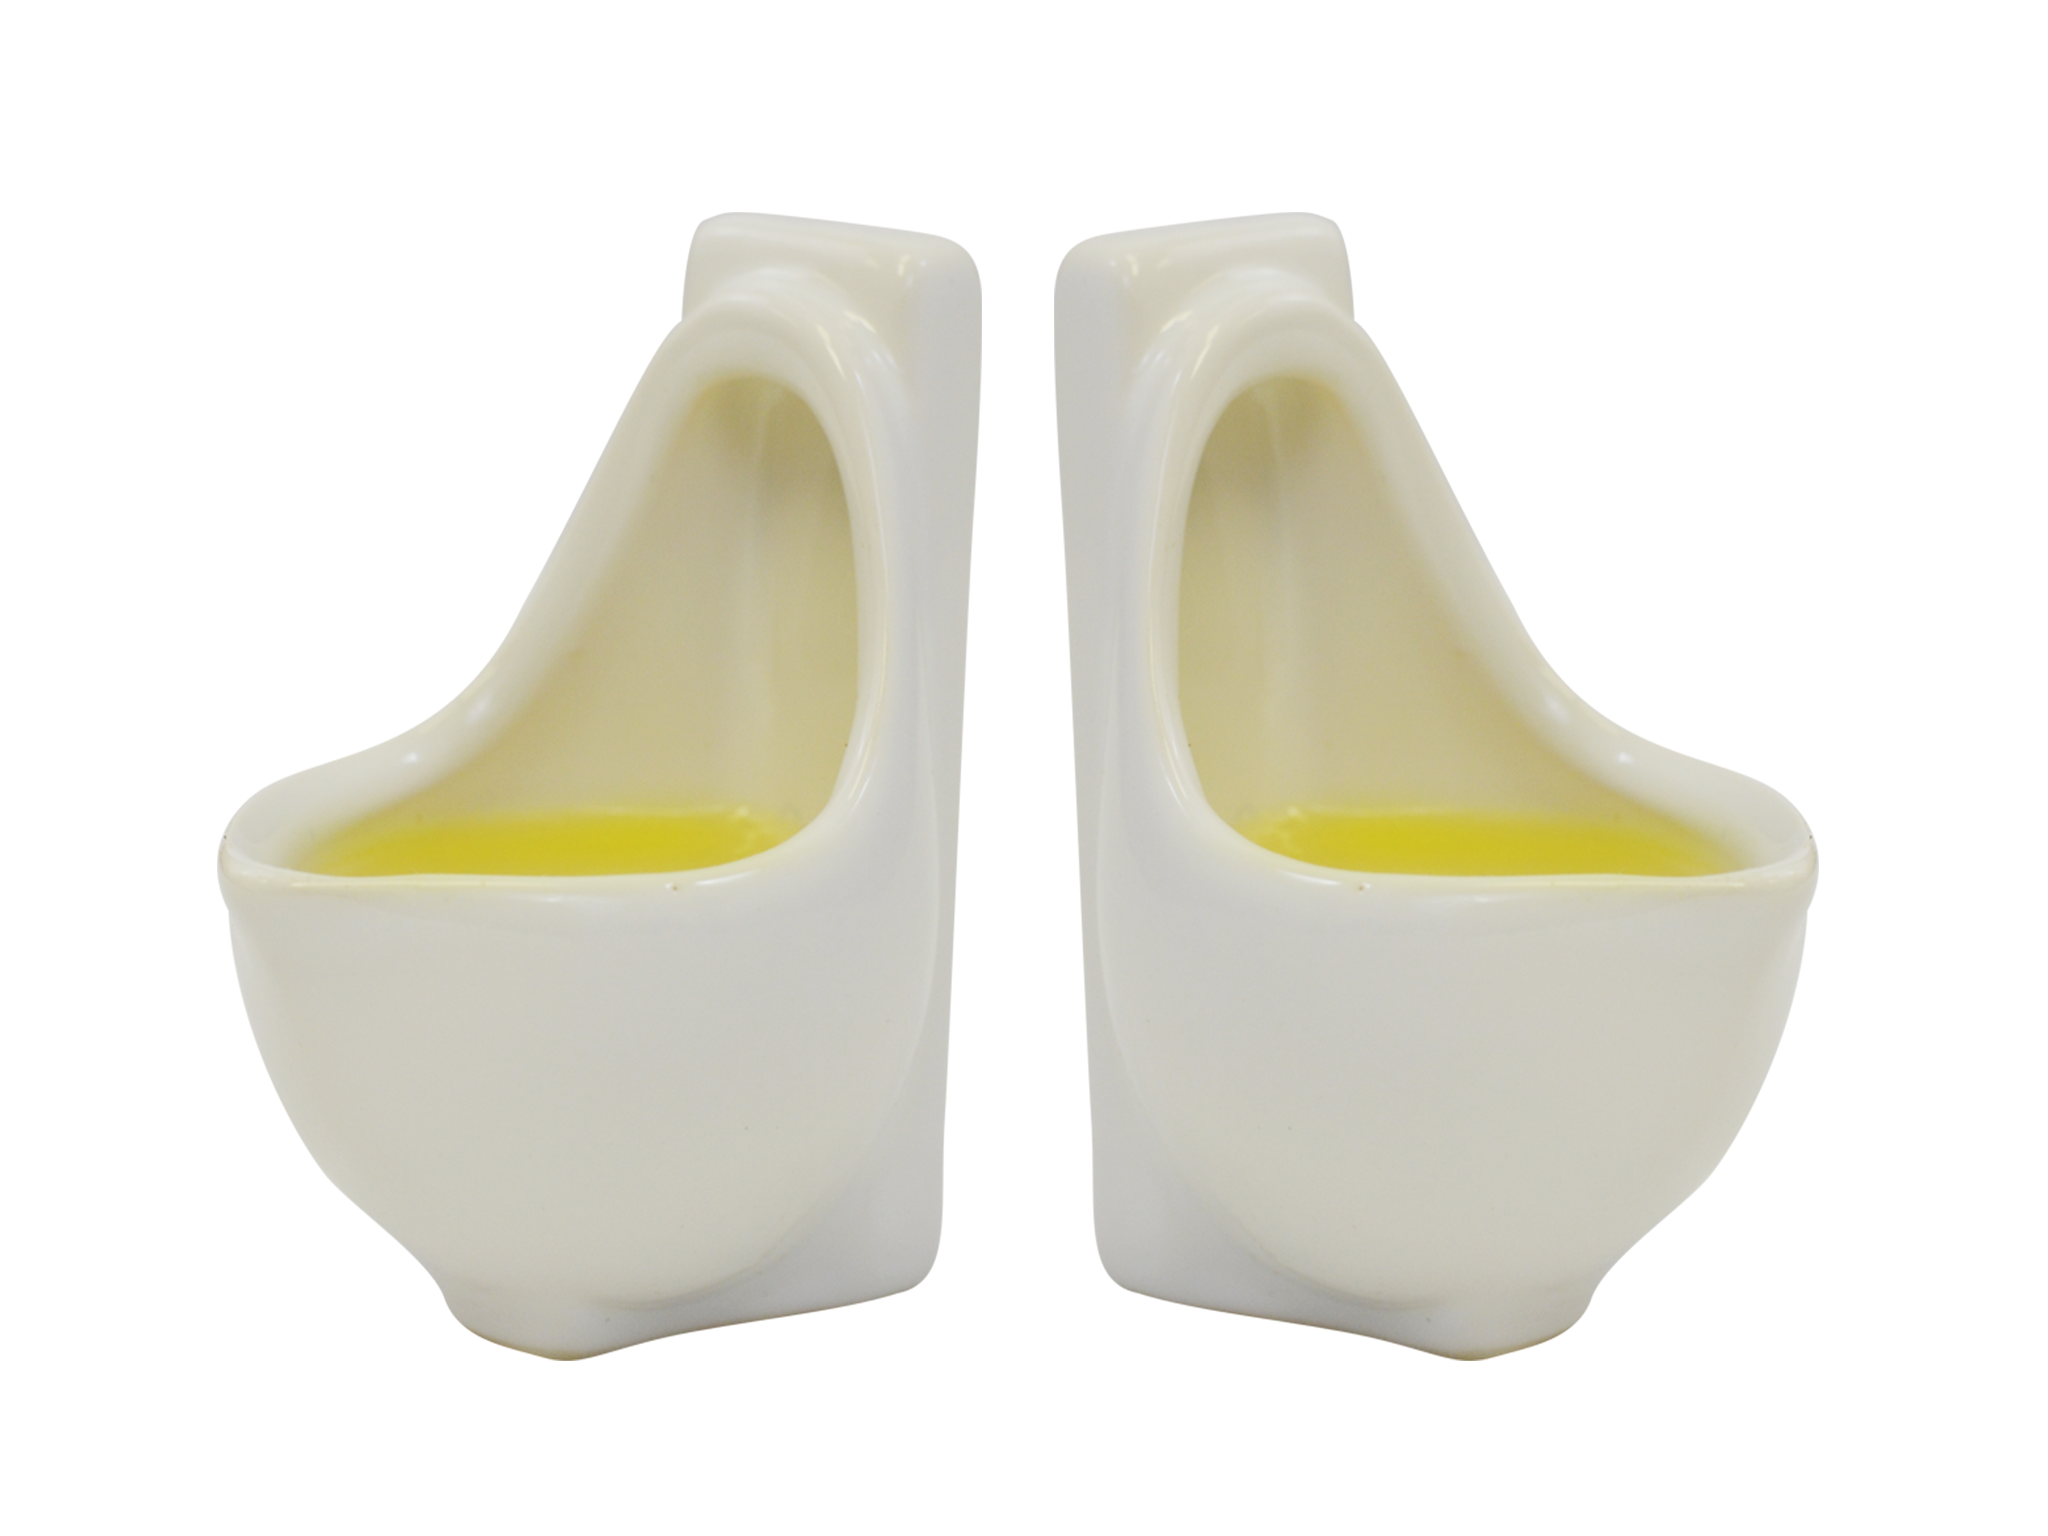 Urinal Shot Glasses - Set of 2